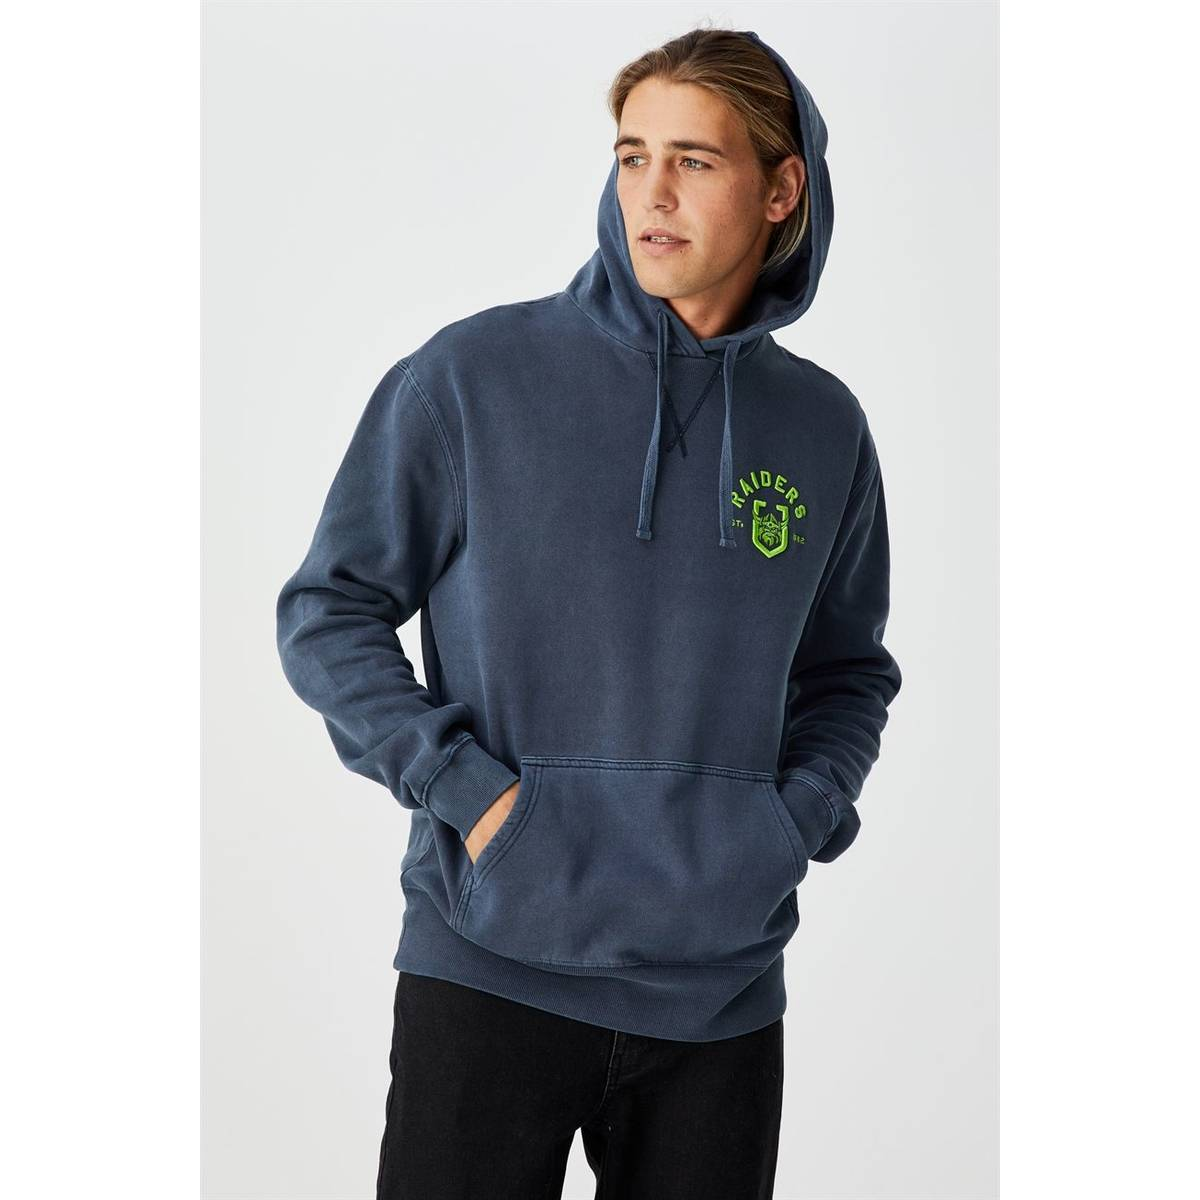 NRL Mens Chest Embroidery Hoodie1